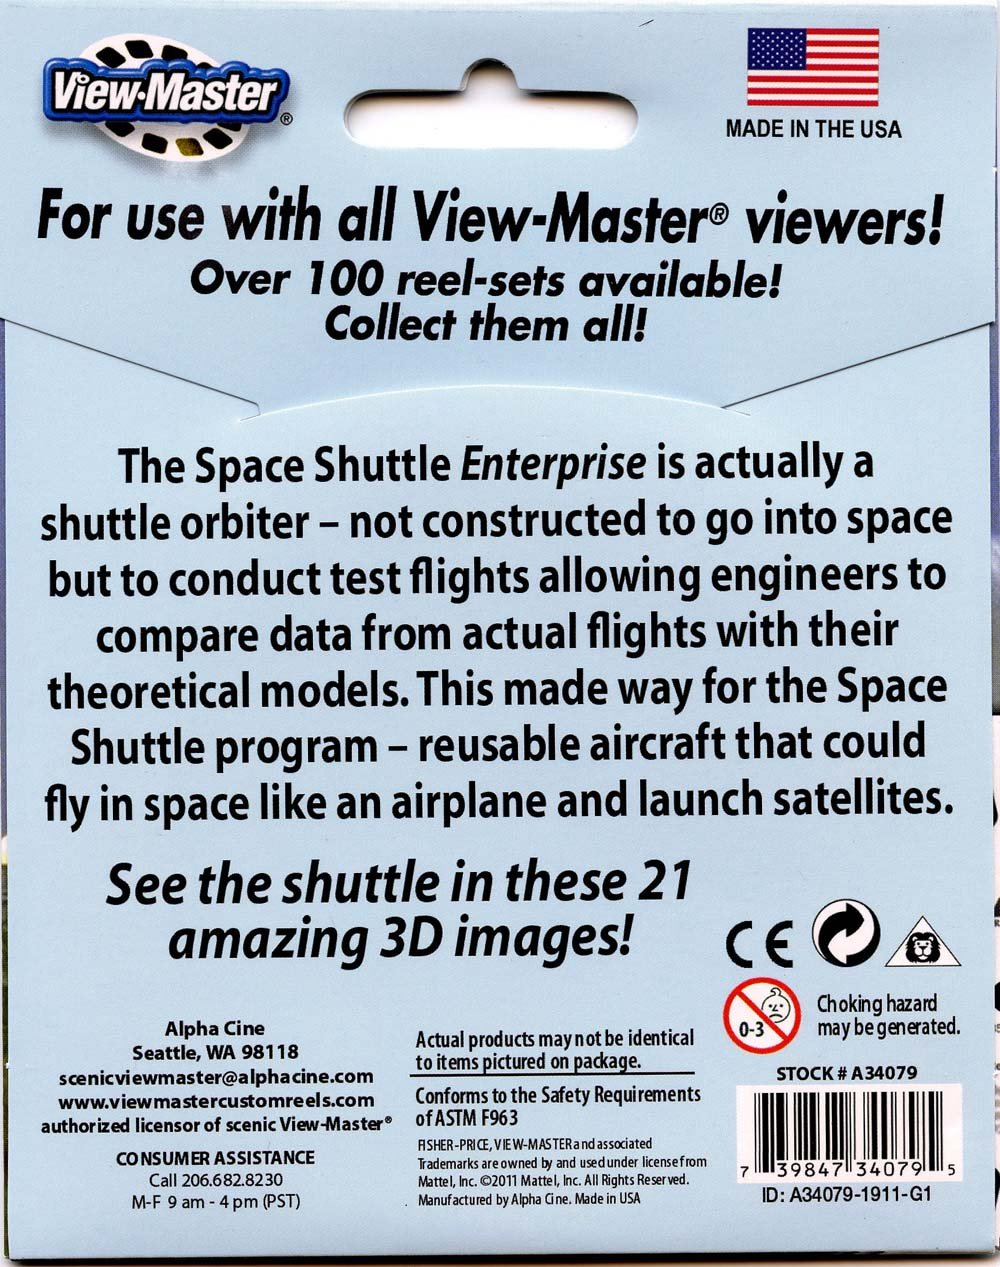 ViewMaster 3Reel Set - The Space Shuttle - 21 3D Images by 3Dstereo ViewMaster (Image #2)